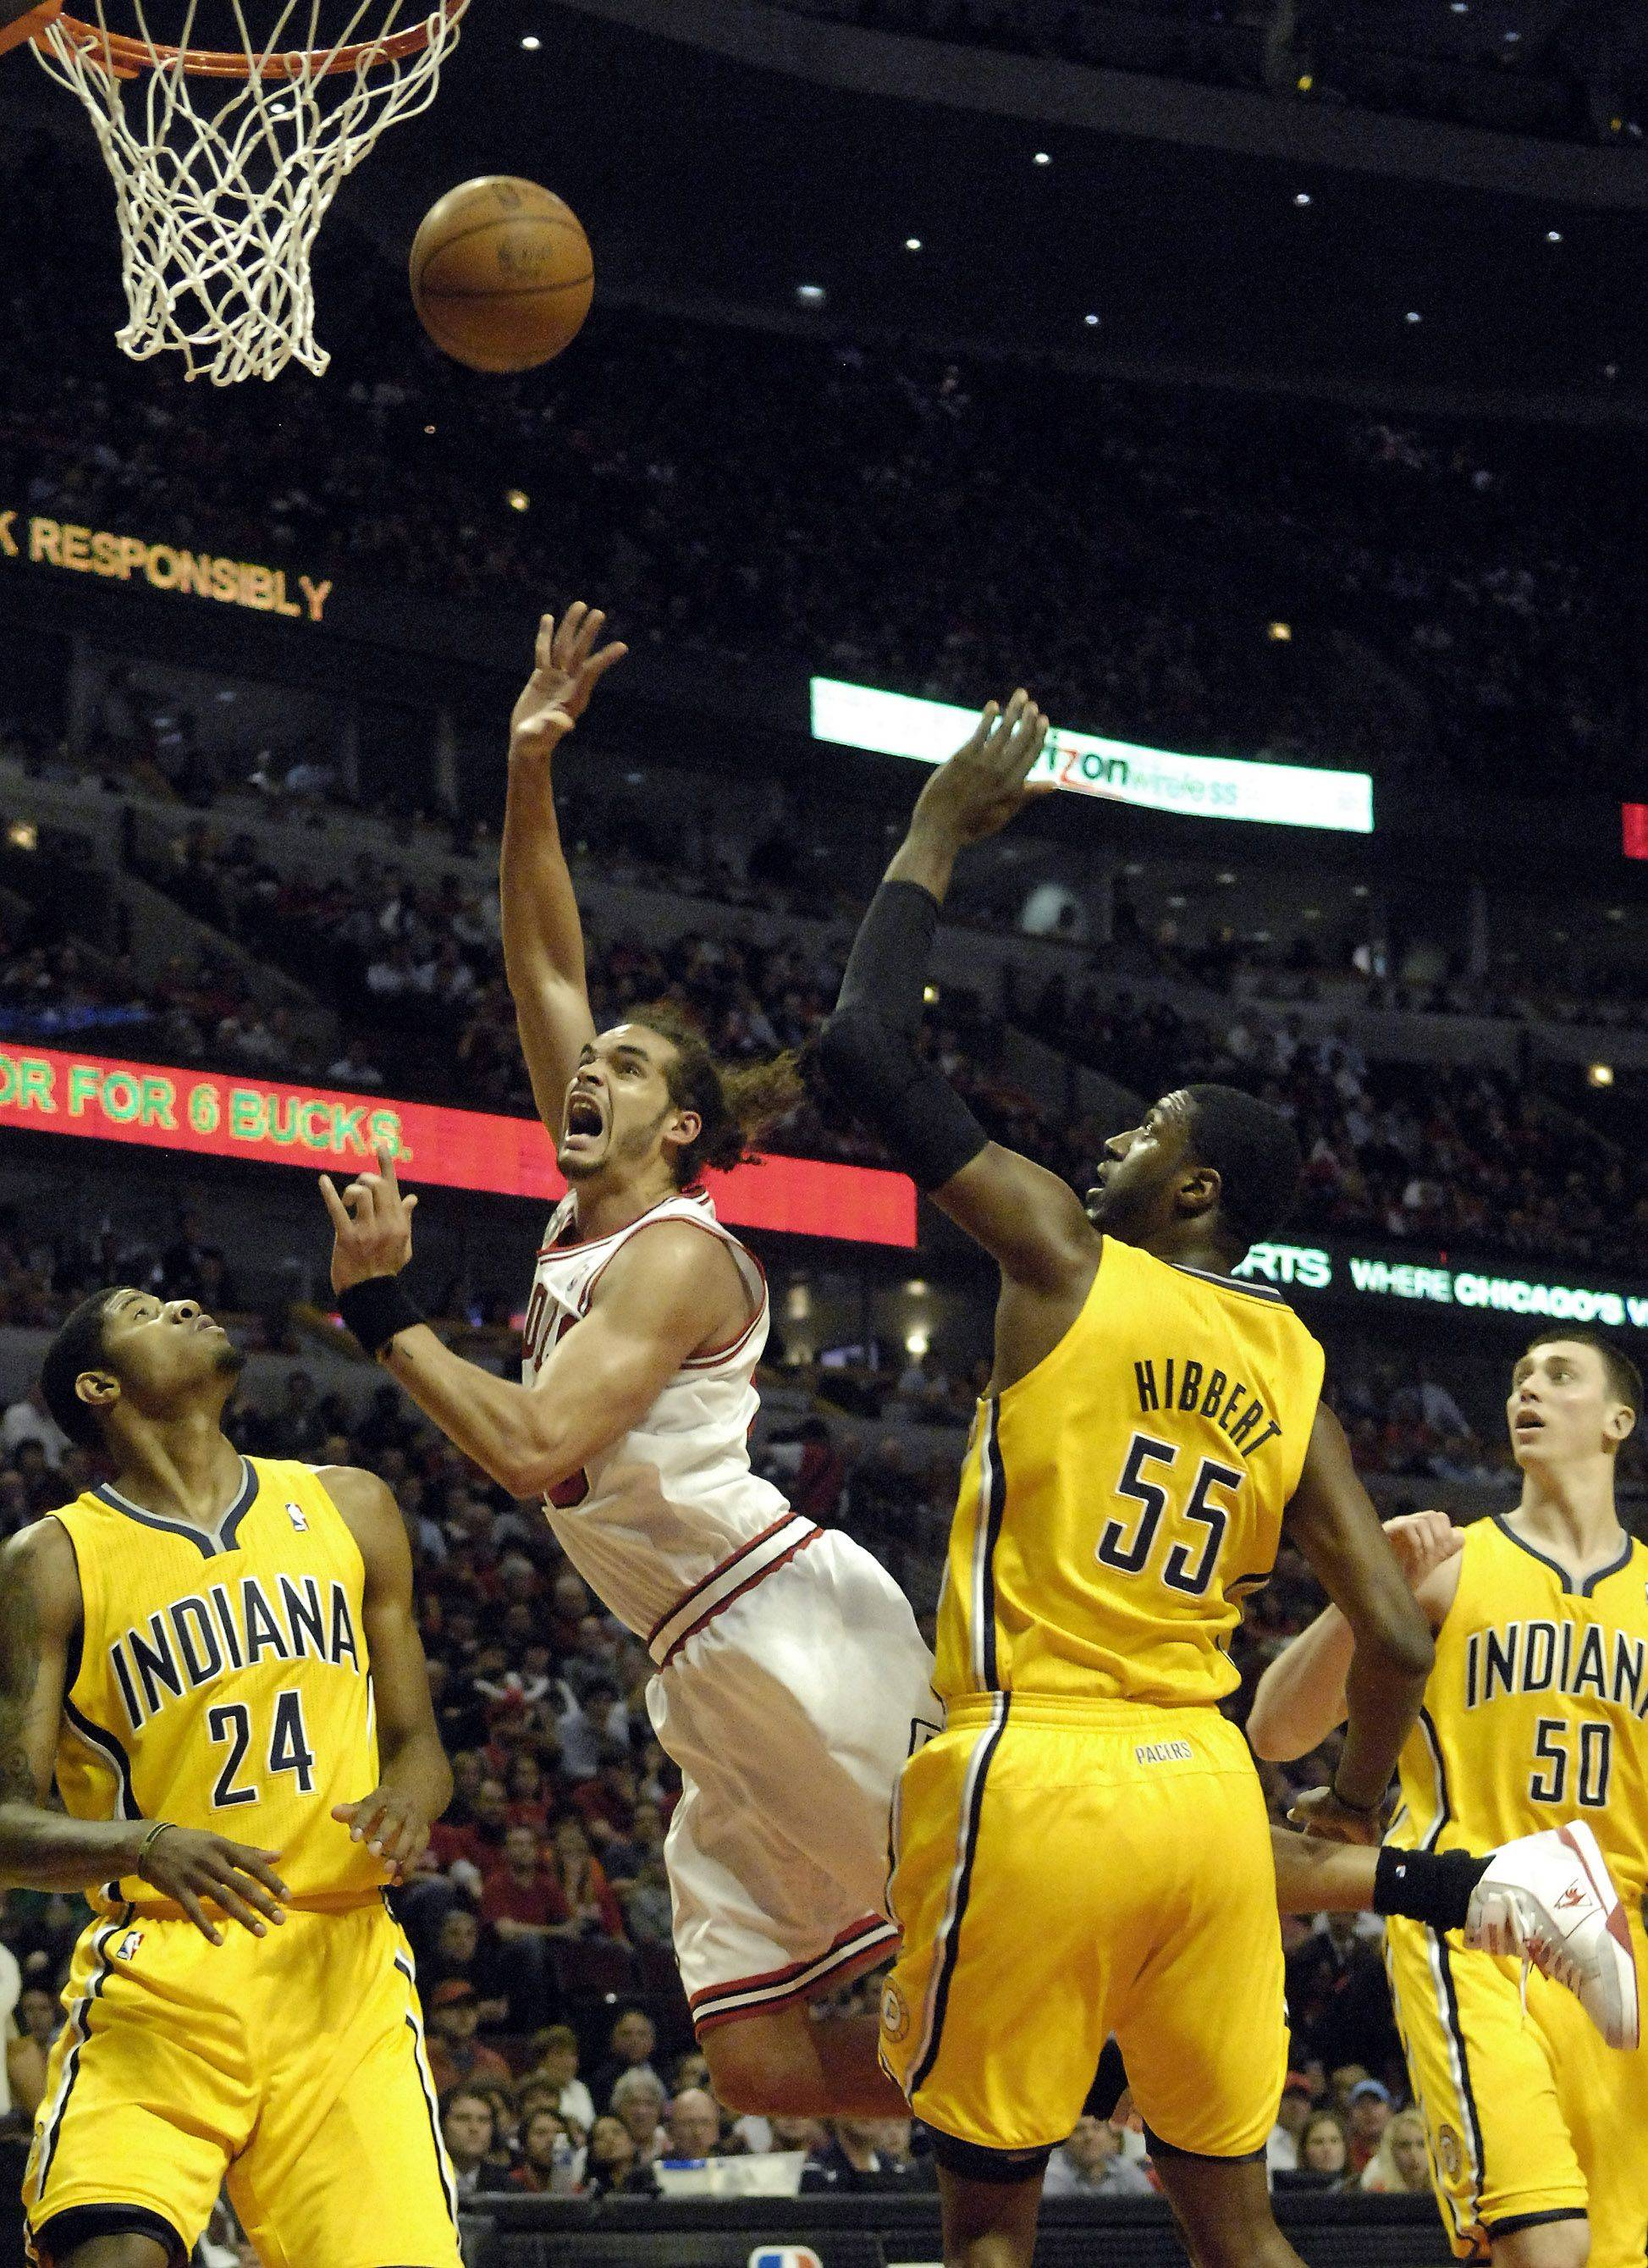 Joakim Noah puts up an off-balance shot in a lane full of Pacers during Game 5 Tuesday night at the United Center.